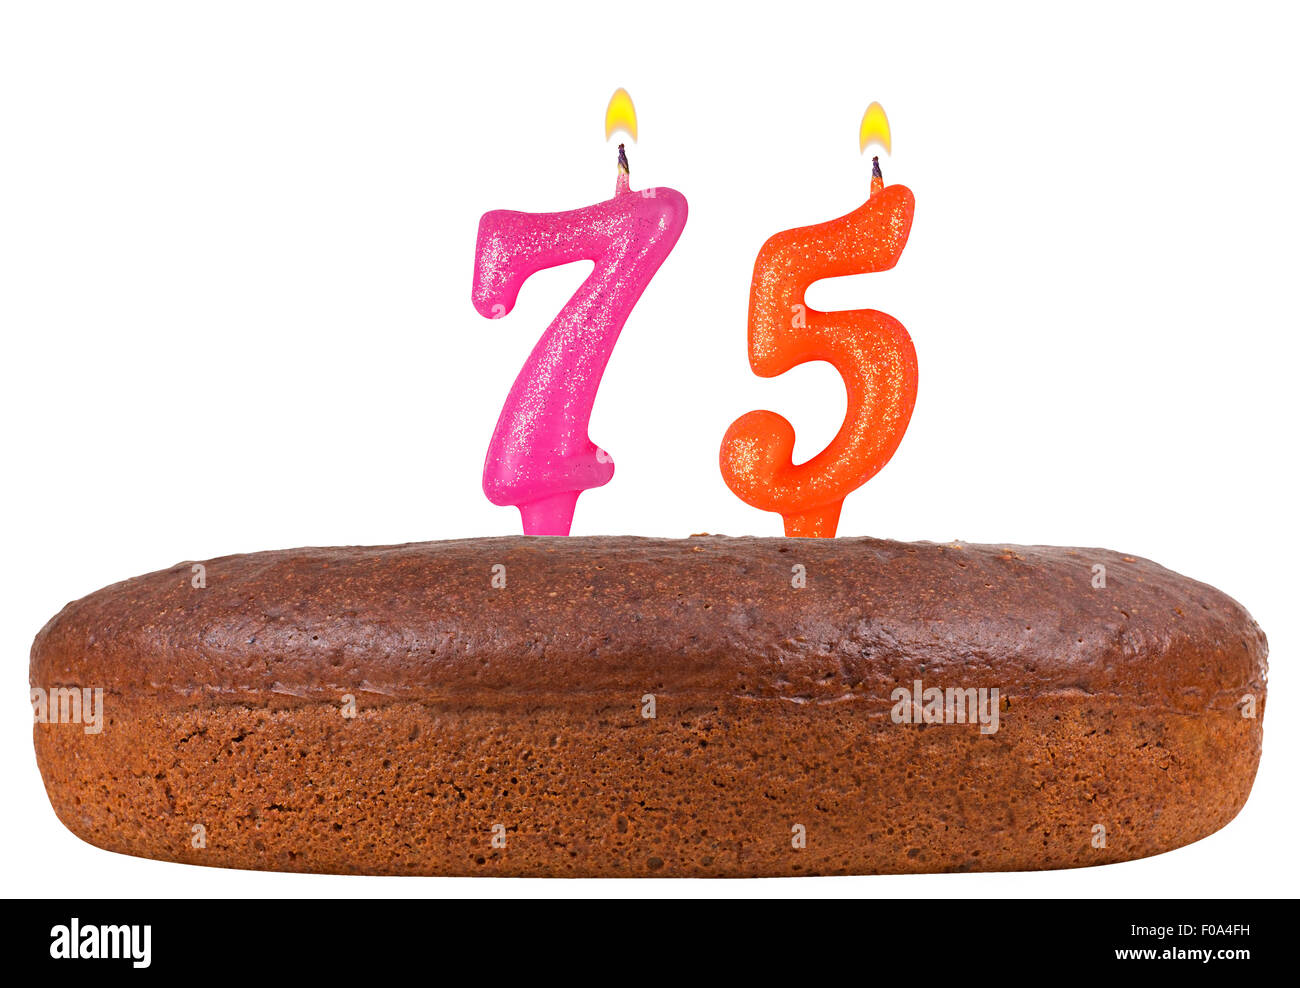 Birthday Cake With Candles Number 75 Isolated On White Background